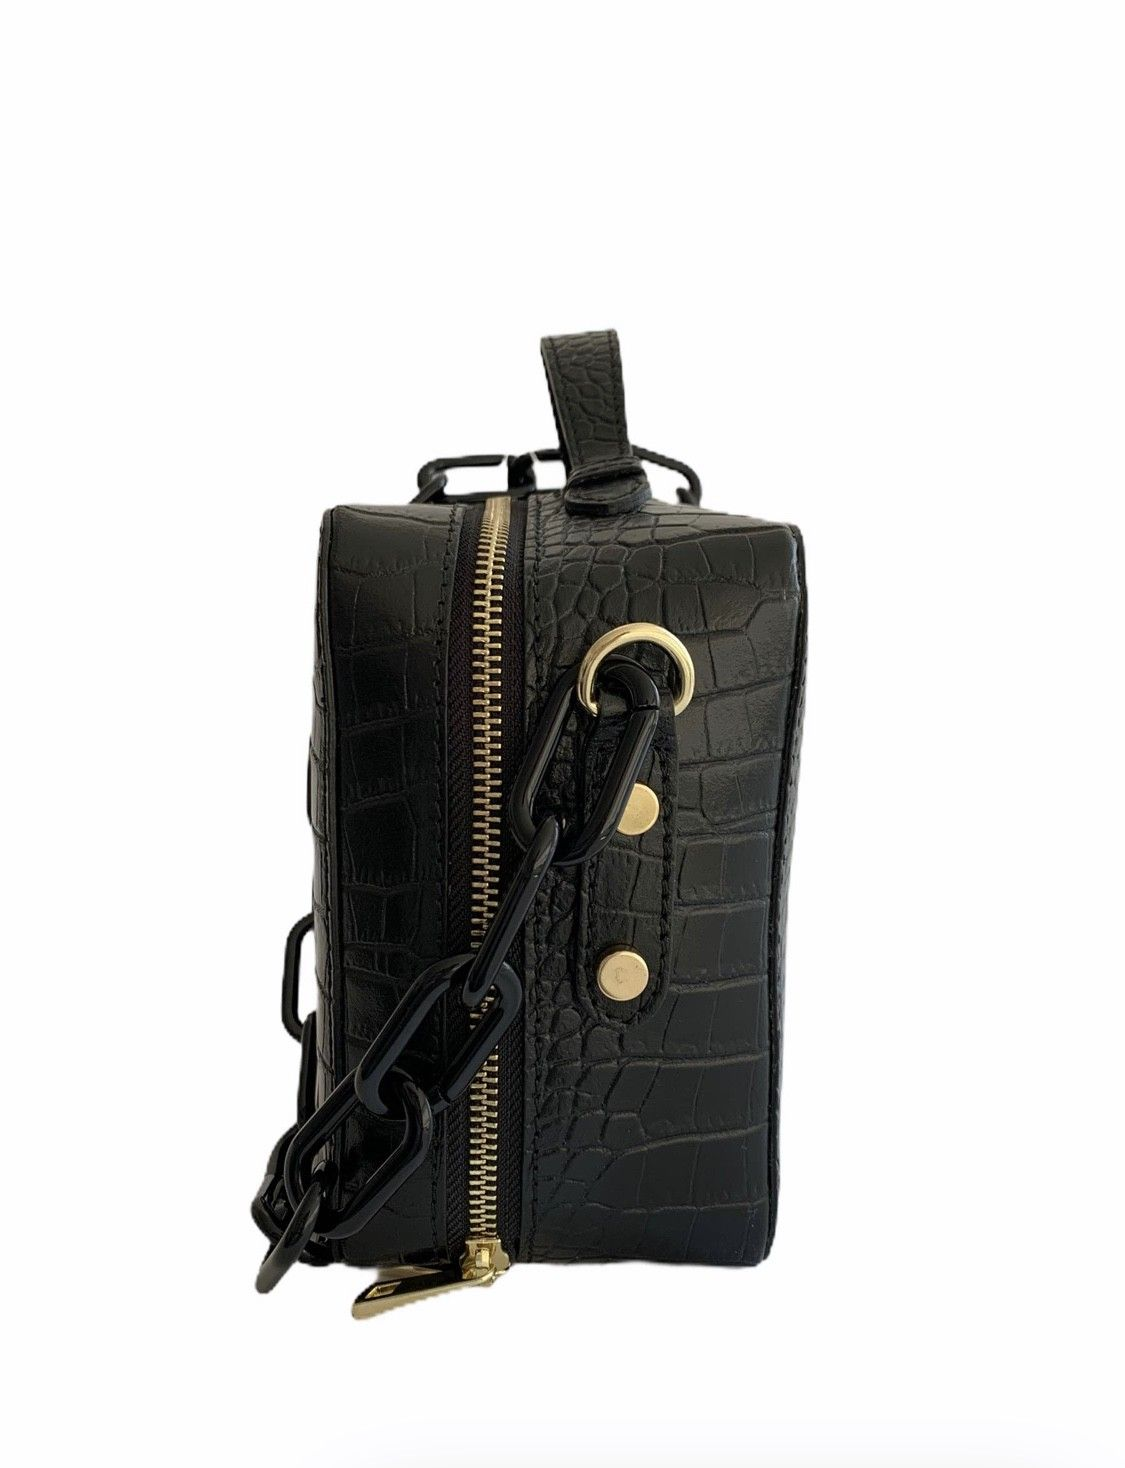 Borsa Chic nero AVENUE67